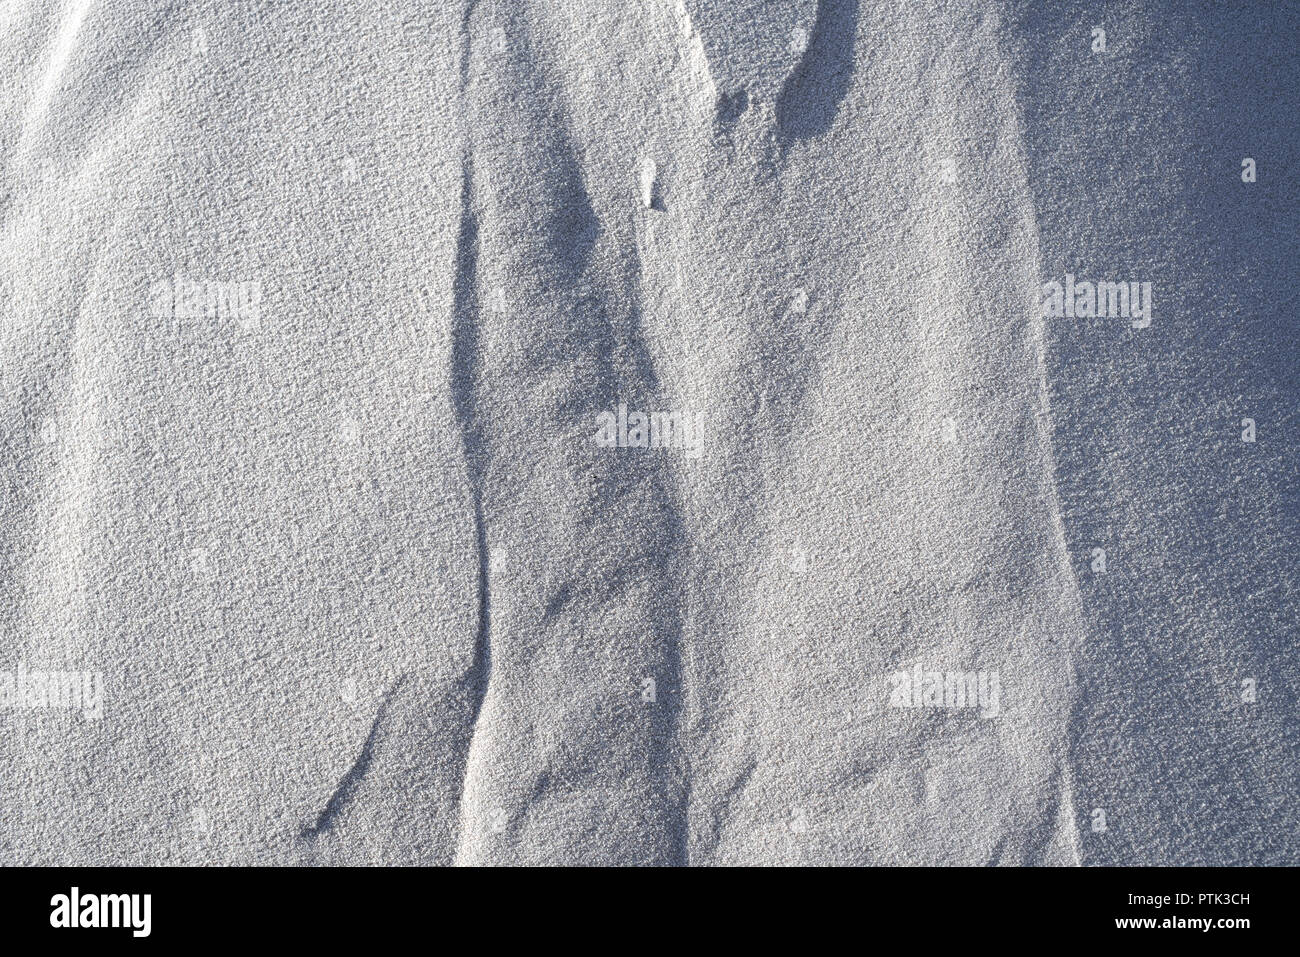 Detail of the raw material white quartz sand. - Stock Image